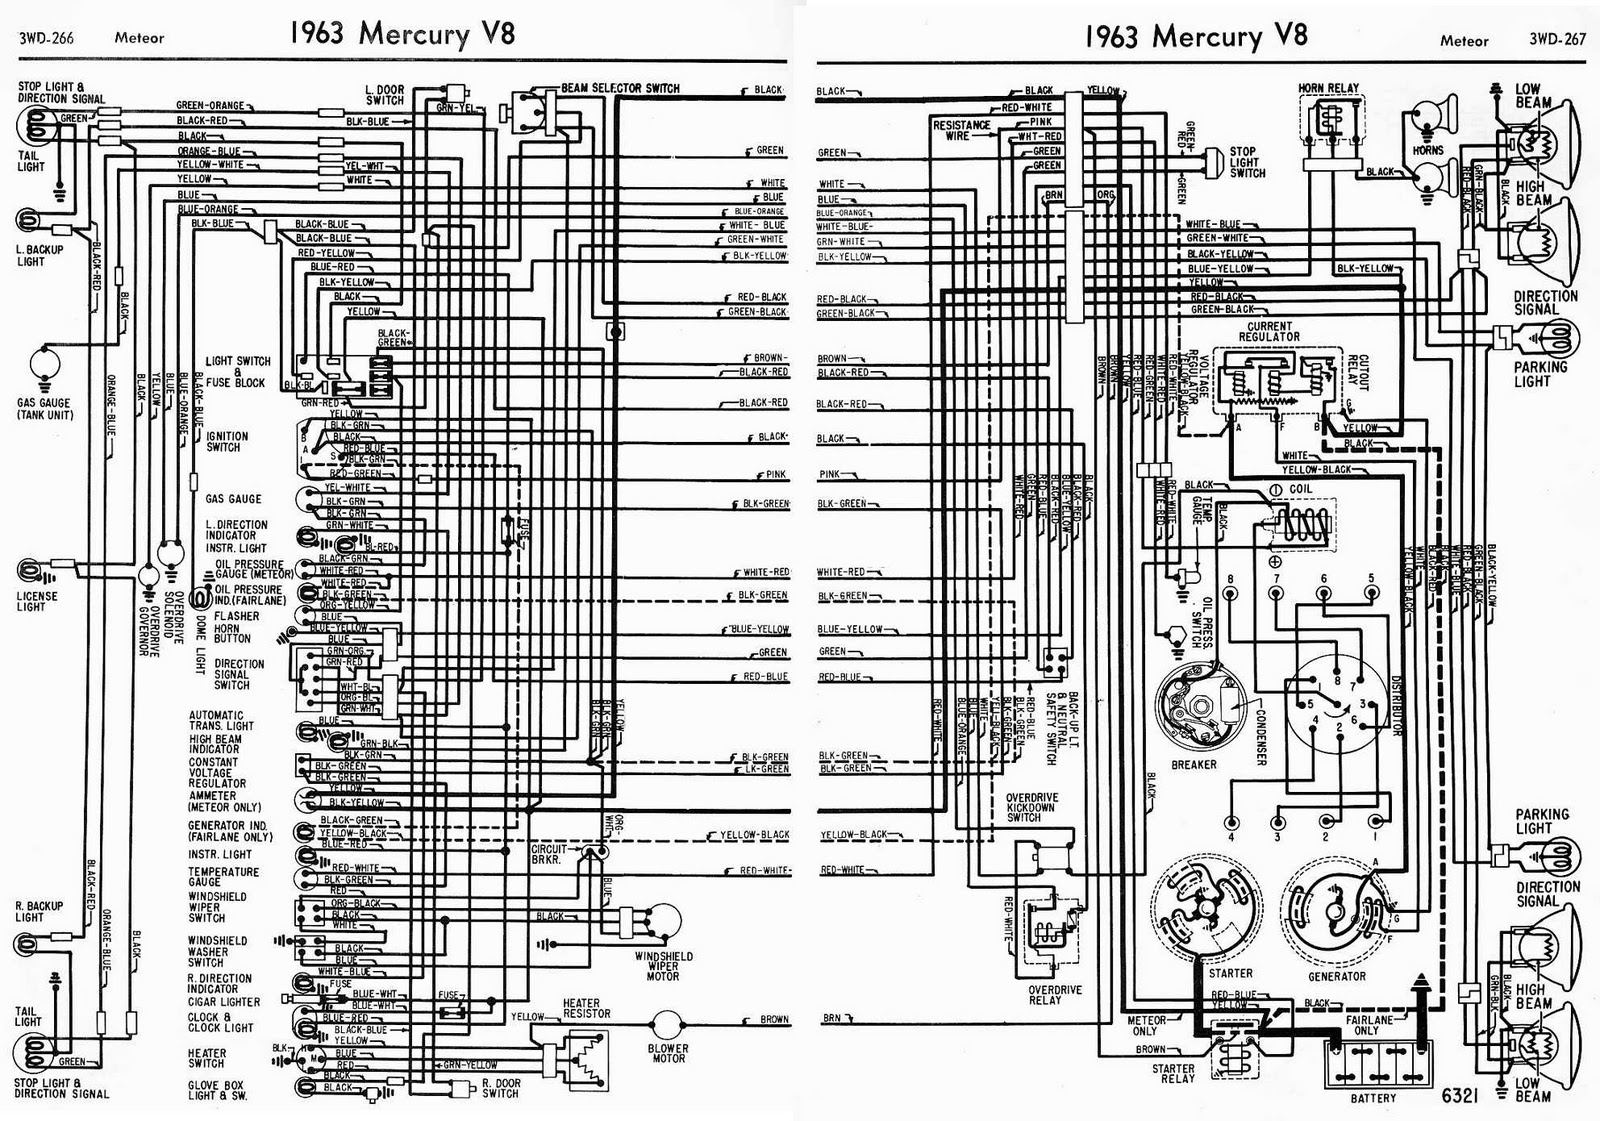 Wiring Diagrams 911 on 1962 ford thunderbird wiring diagram, 1965 ford mustang wiring diagram, 1966 ford thunderbird wiring diagram, 1969 ford mustang wiring diagram, 1970 ford mustang wiring diagram, 1979 ford bronco wiring diagram, 1973 ford mustang wiring diagram, 1955 ford thunderbird wiring diagram, 1963 ford galaxie parts catalog, 1967 ford mustang wiring diagram, 1971 ford mustang wiring diagram, 1962 ford falcon wiring diagram, 1966 ford mustang wiring diagram, 1960 ford thunderbird wiring diagram, 1960 ford falcon wiring diagram,